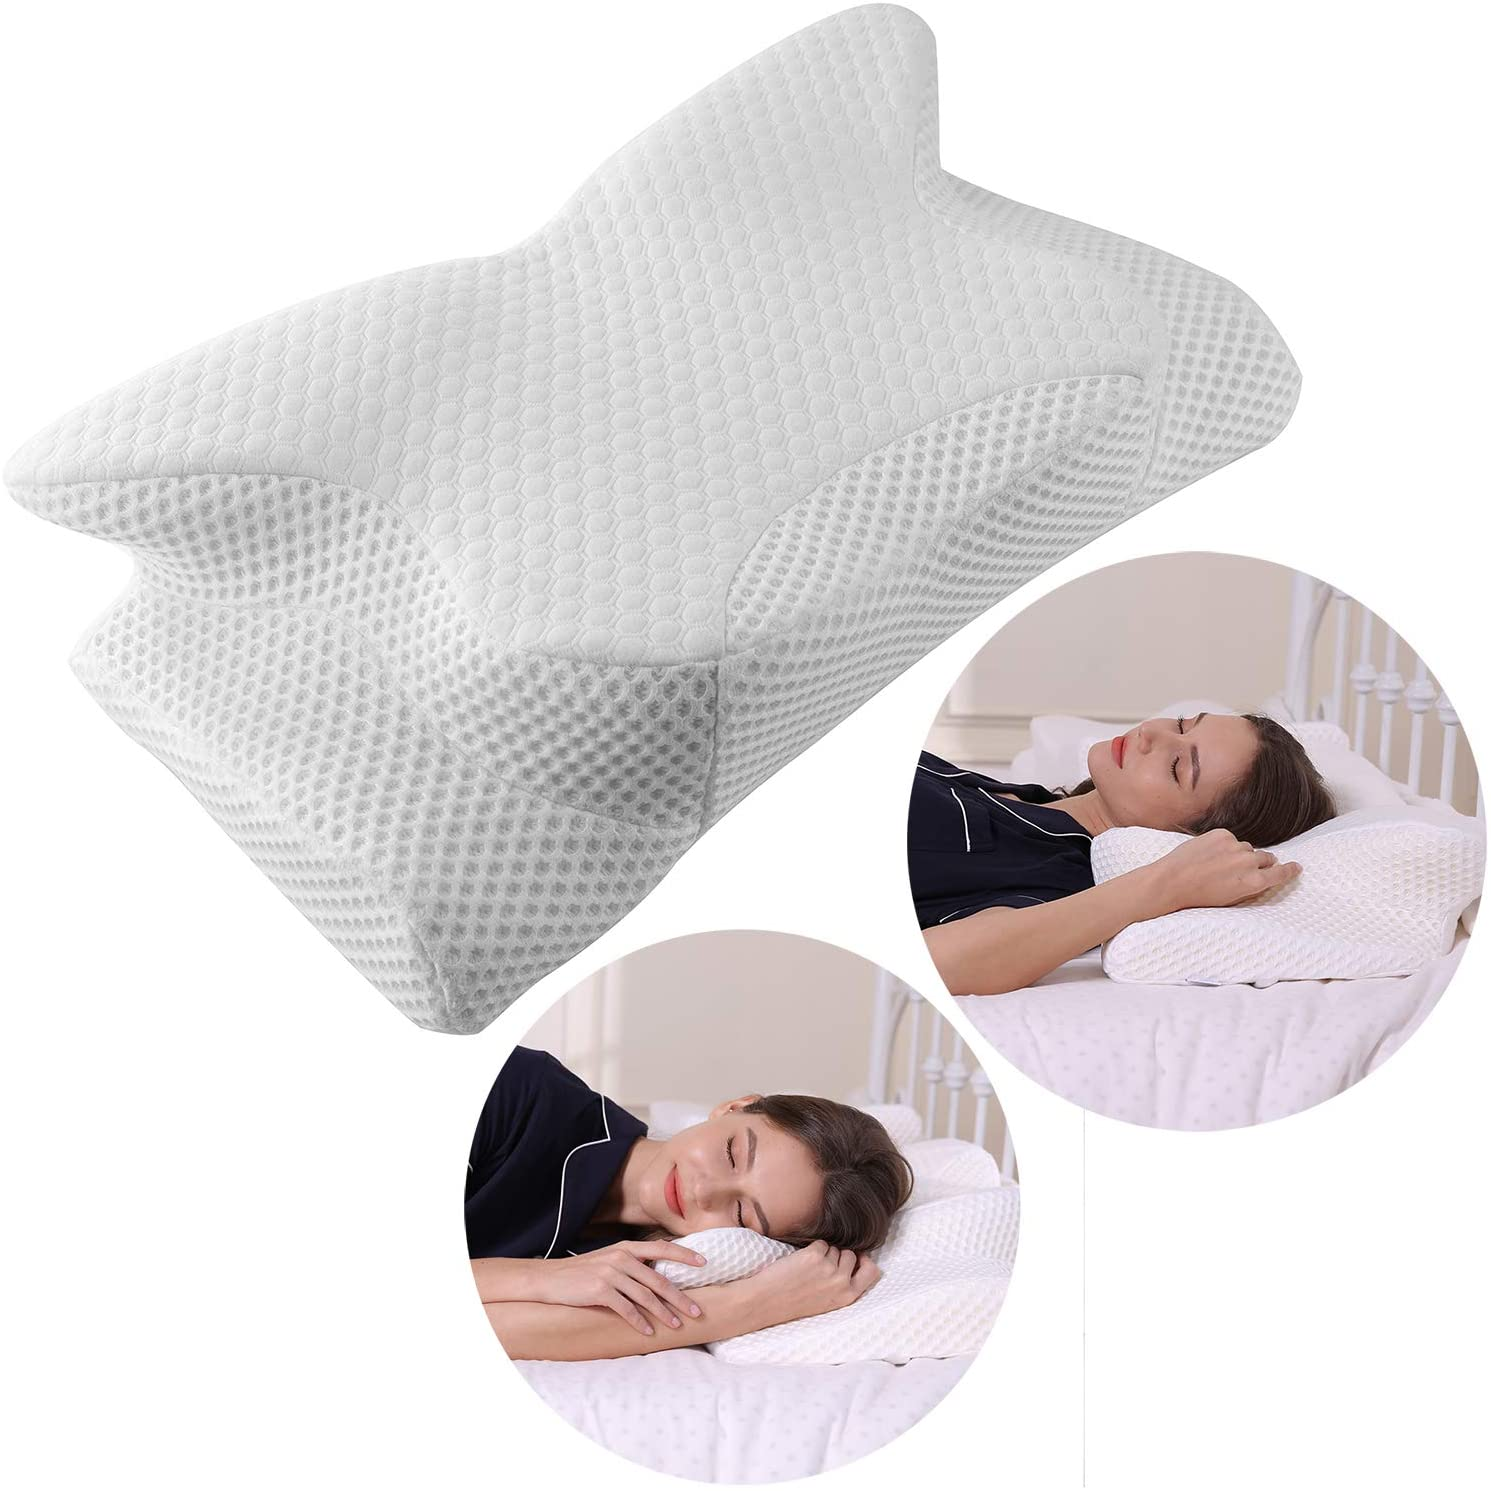 Are you looking for a cervical memory foam pillow? This article provides a detailed review of some of the best memory foam pillows for side sleepers and people with neck and shoulder pain.